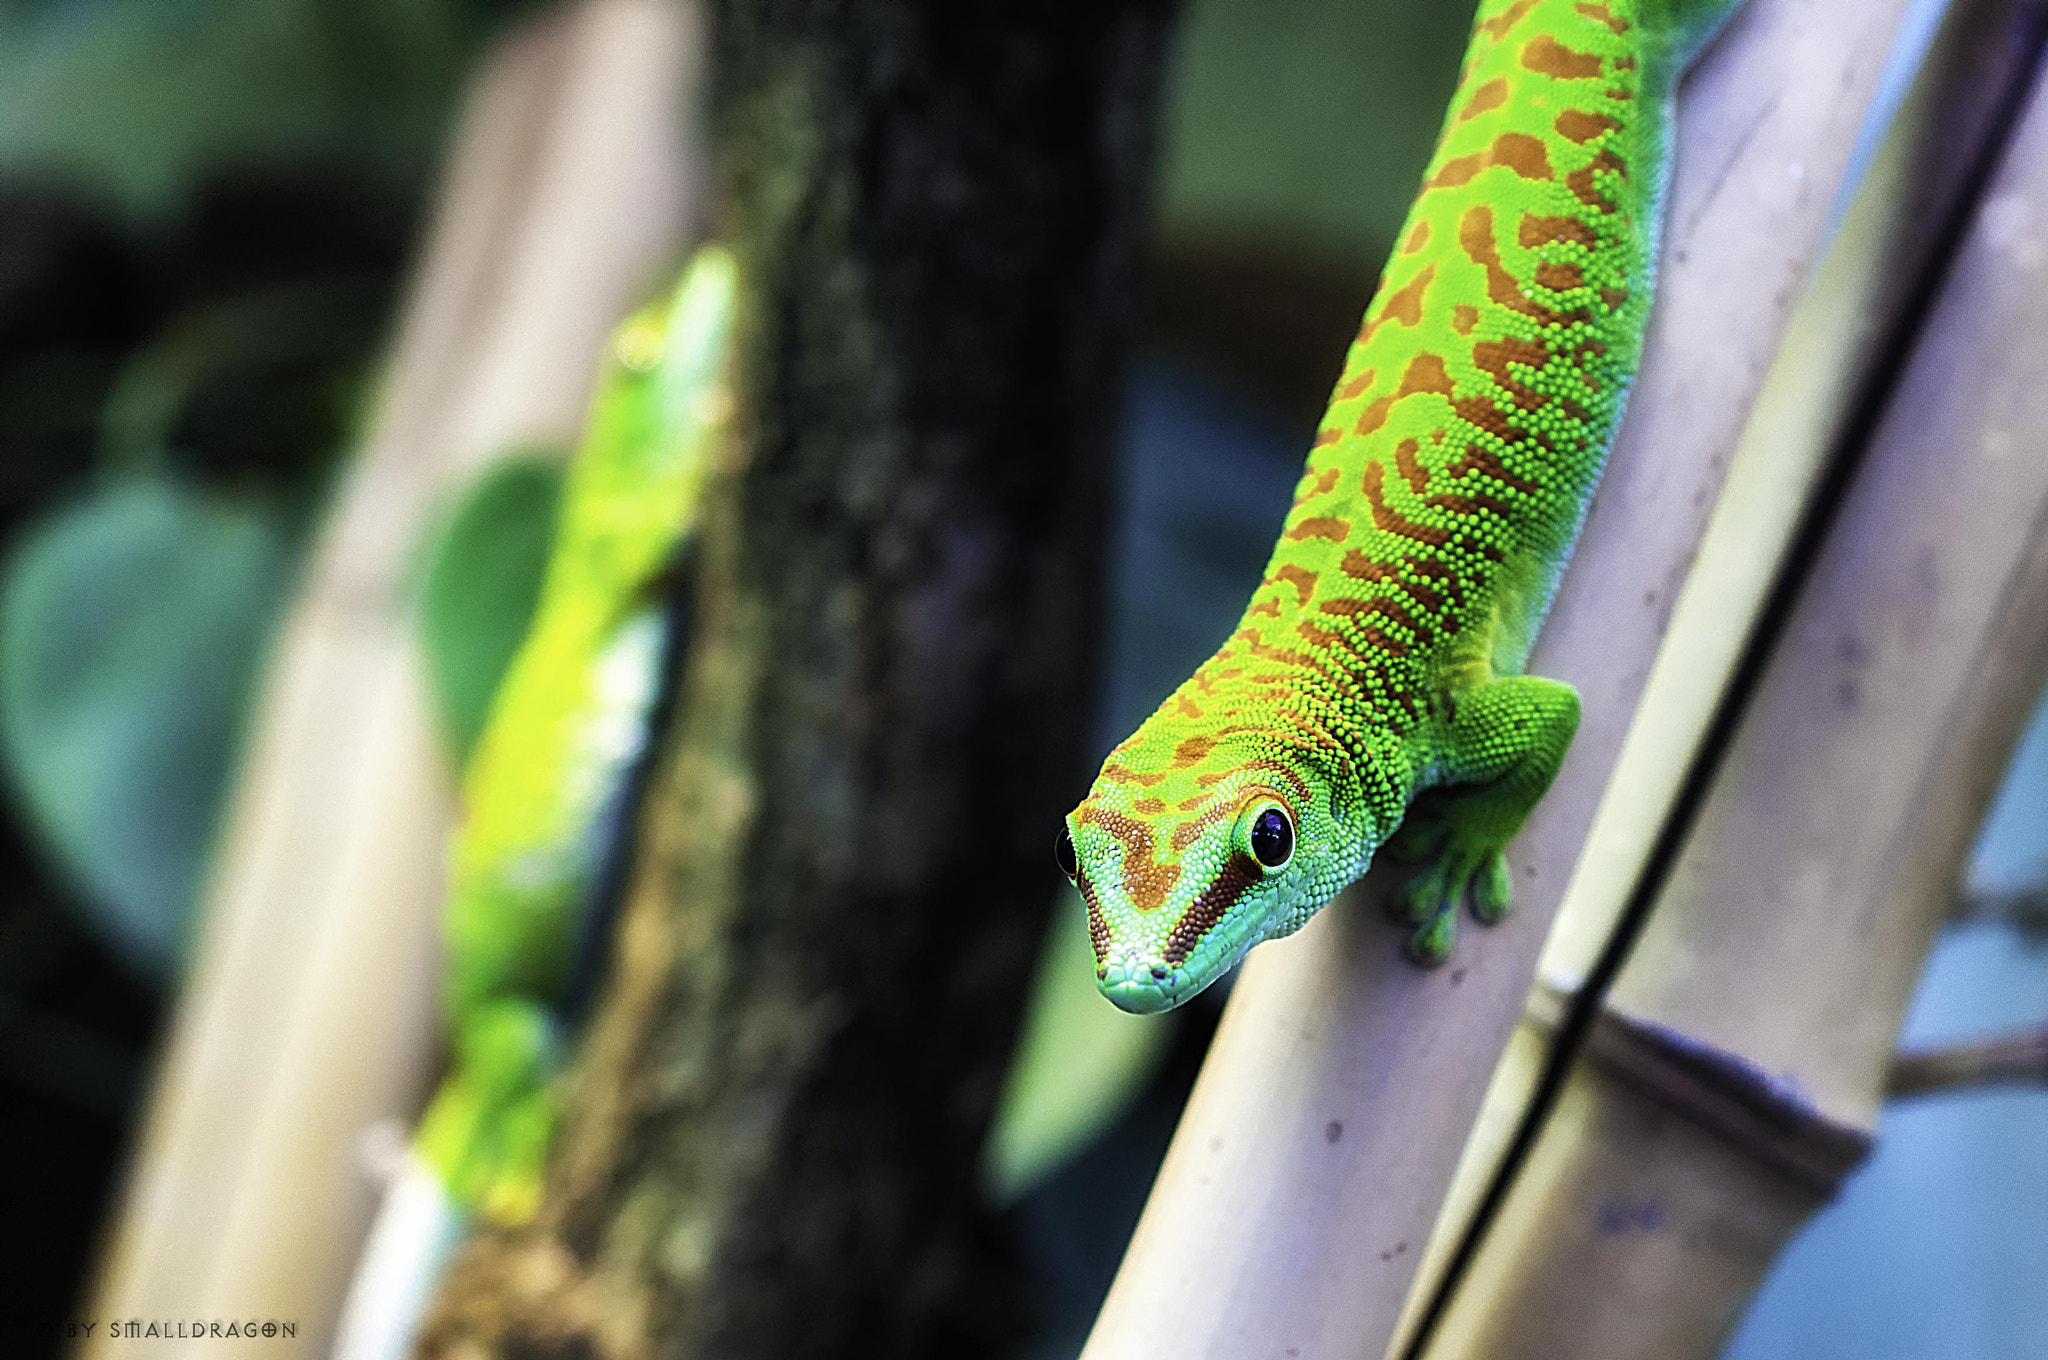 Photograph Madagascar Giant Day Gecko by Sven Reitis on 500px